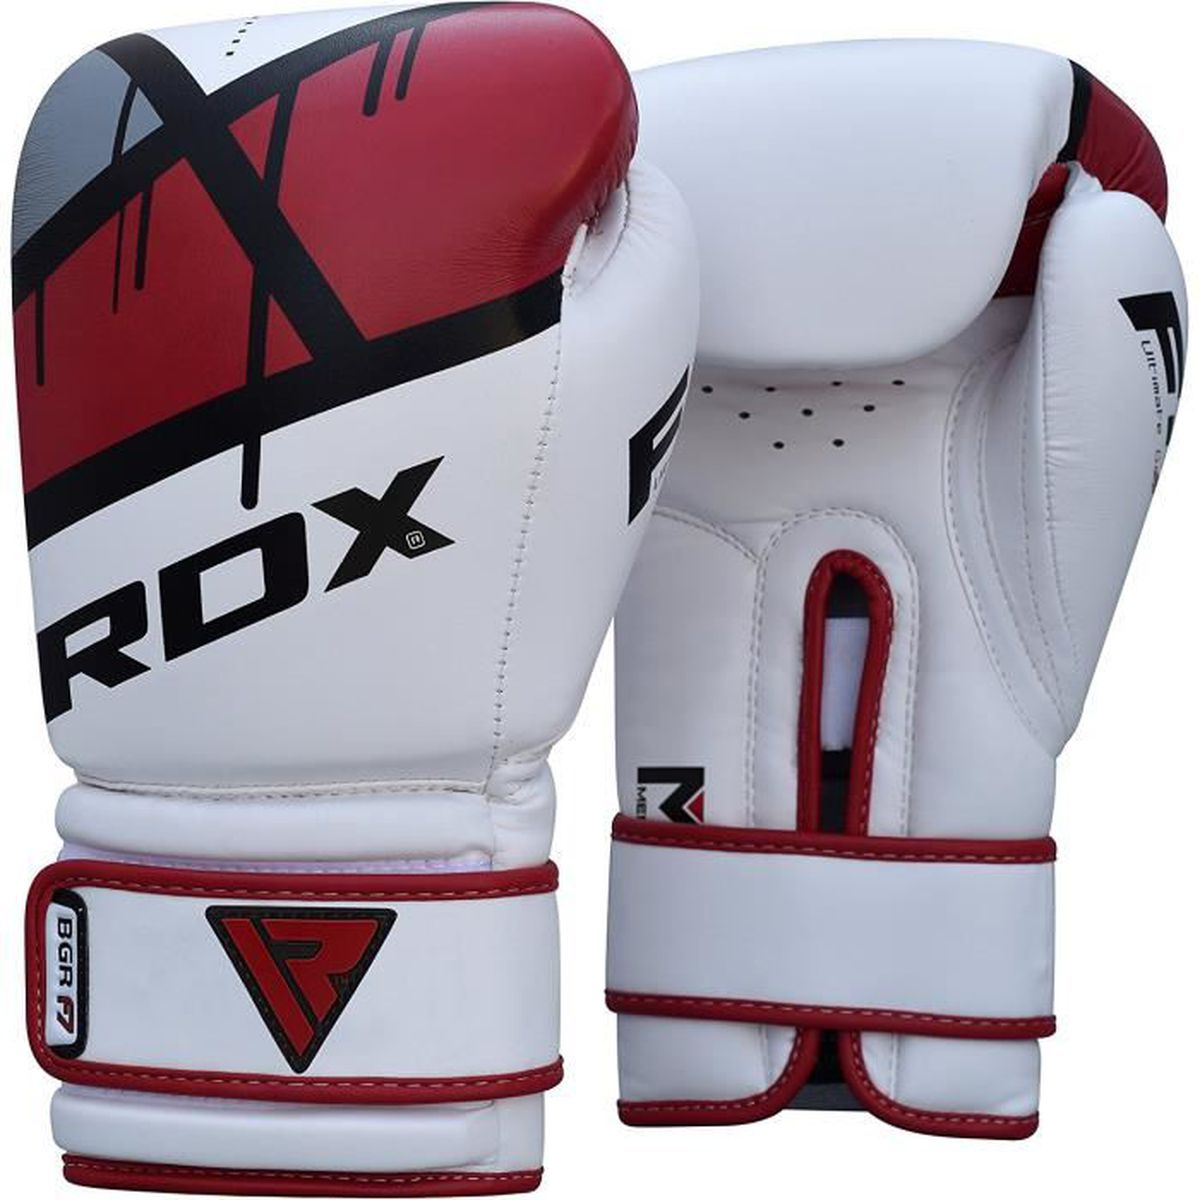 RDX Gants de Boxe Ego Muay Thai kickboxing Gant Sac Frappe Sparring Entrainement Mitaines Competition Maya Hide Boxing Gloves F7R